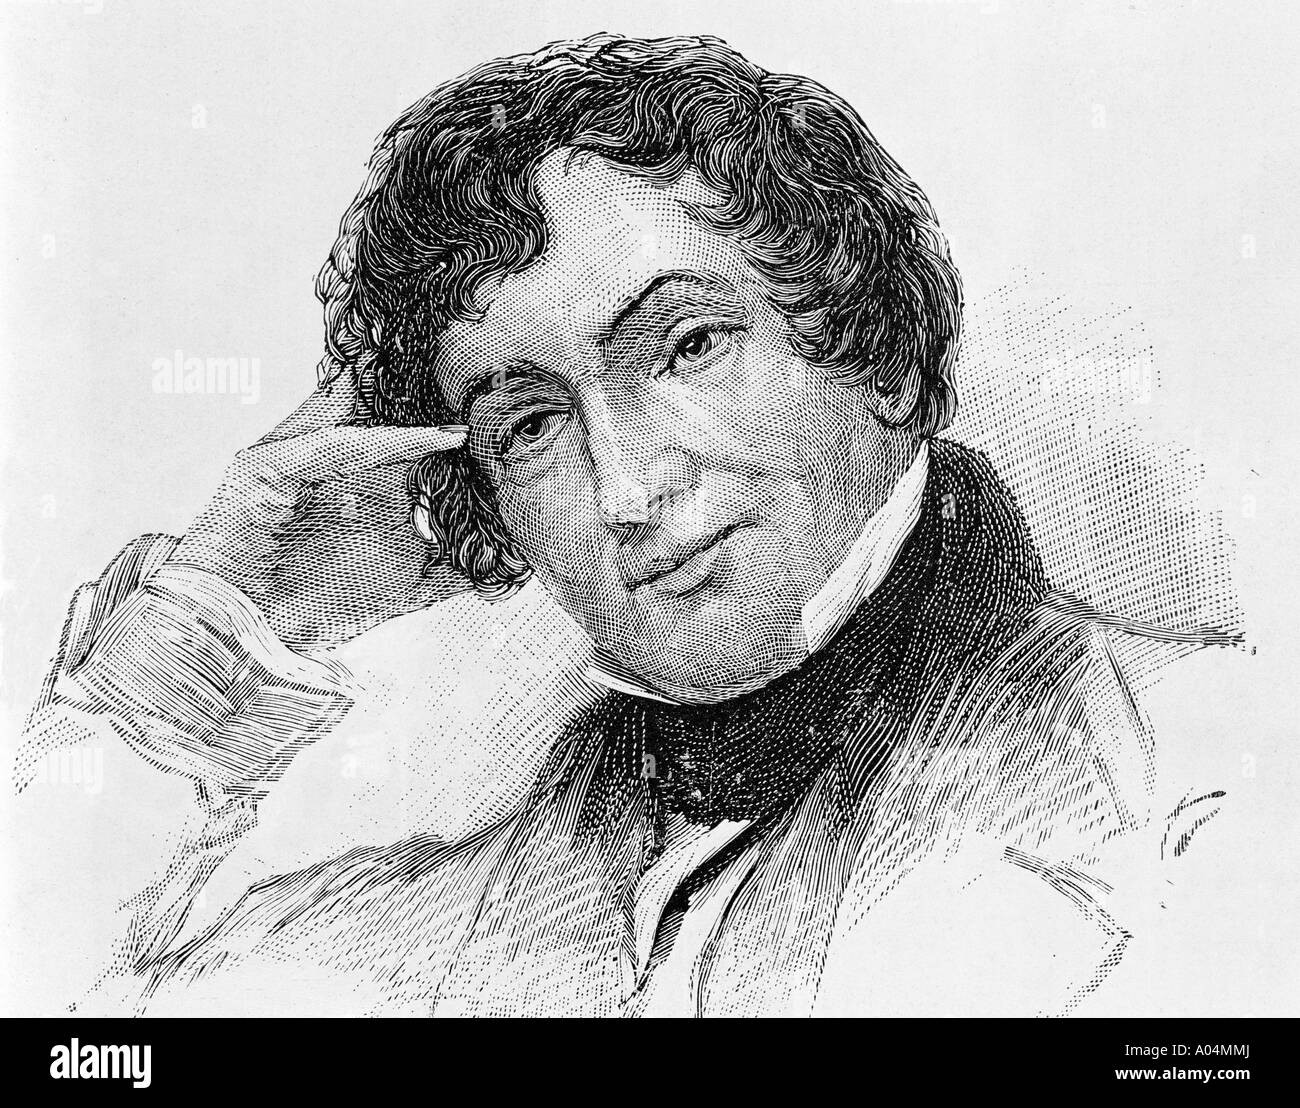 Washington Irving 1783 to 1859 American author known as First American Man of Letters - Stock Image